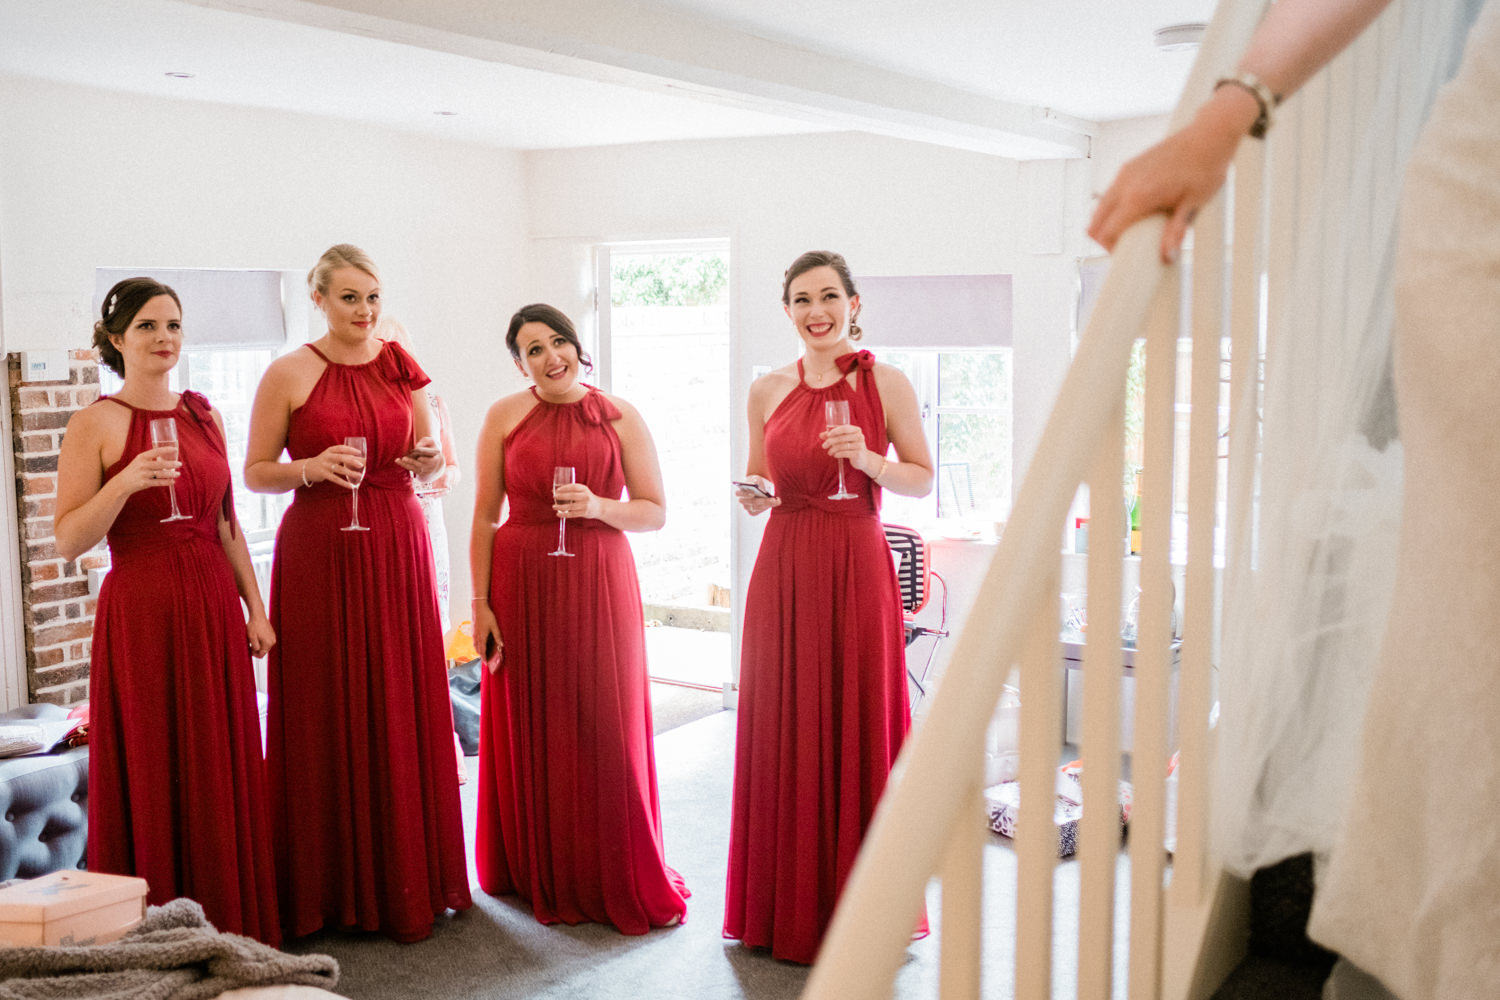 121-bridesmaids-seeing-bride-for-the-first-time.jpg